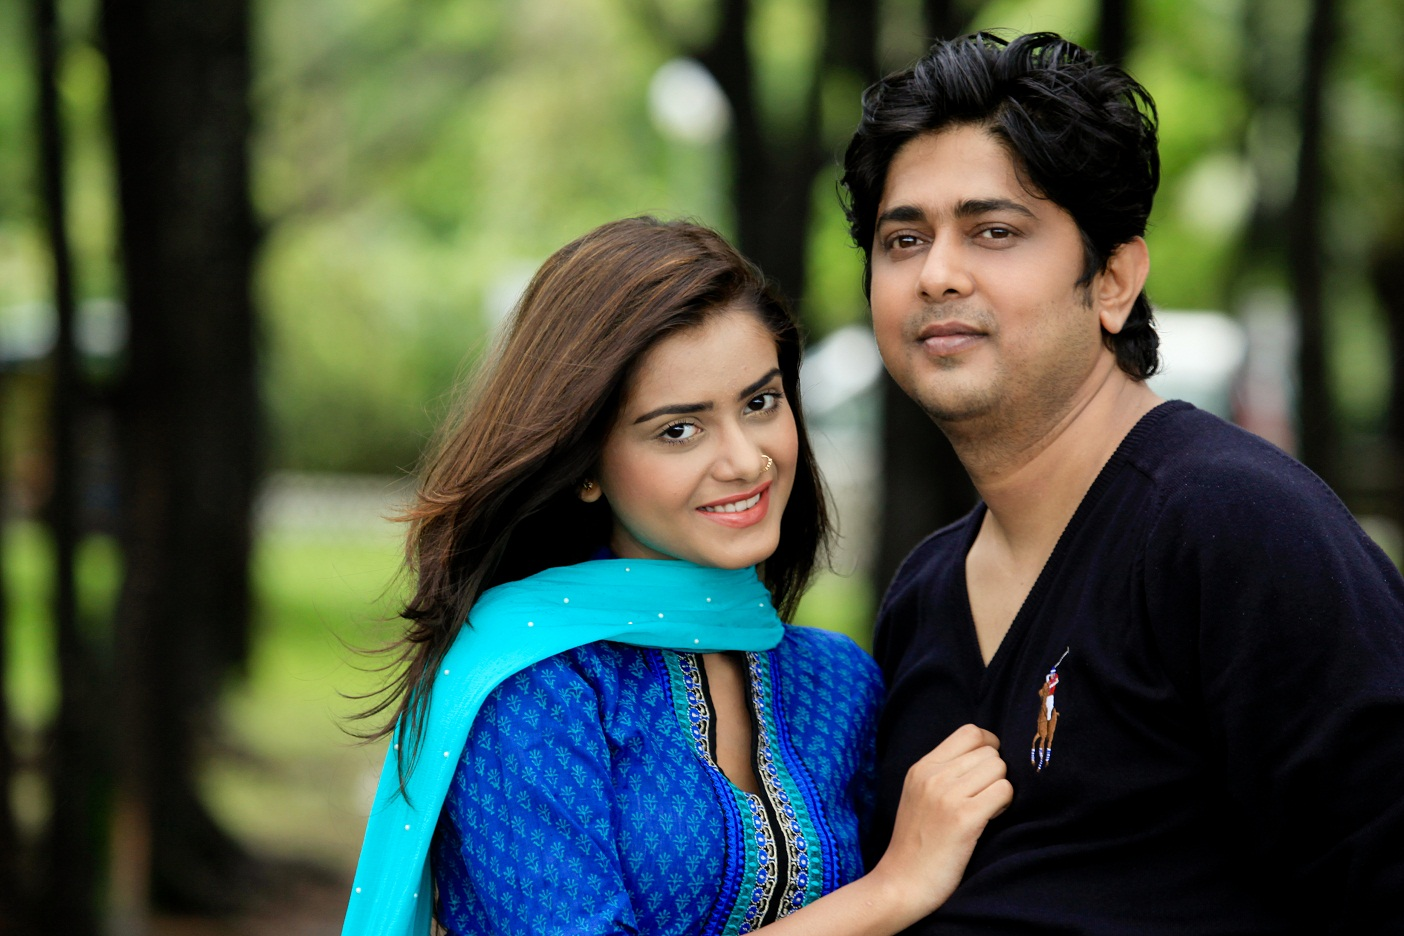 Tanjin Tisha-Arshad Adnan in TV screenplay for first time